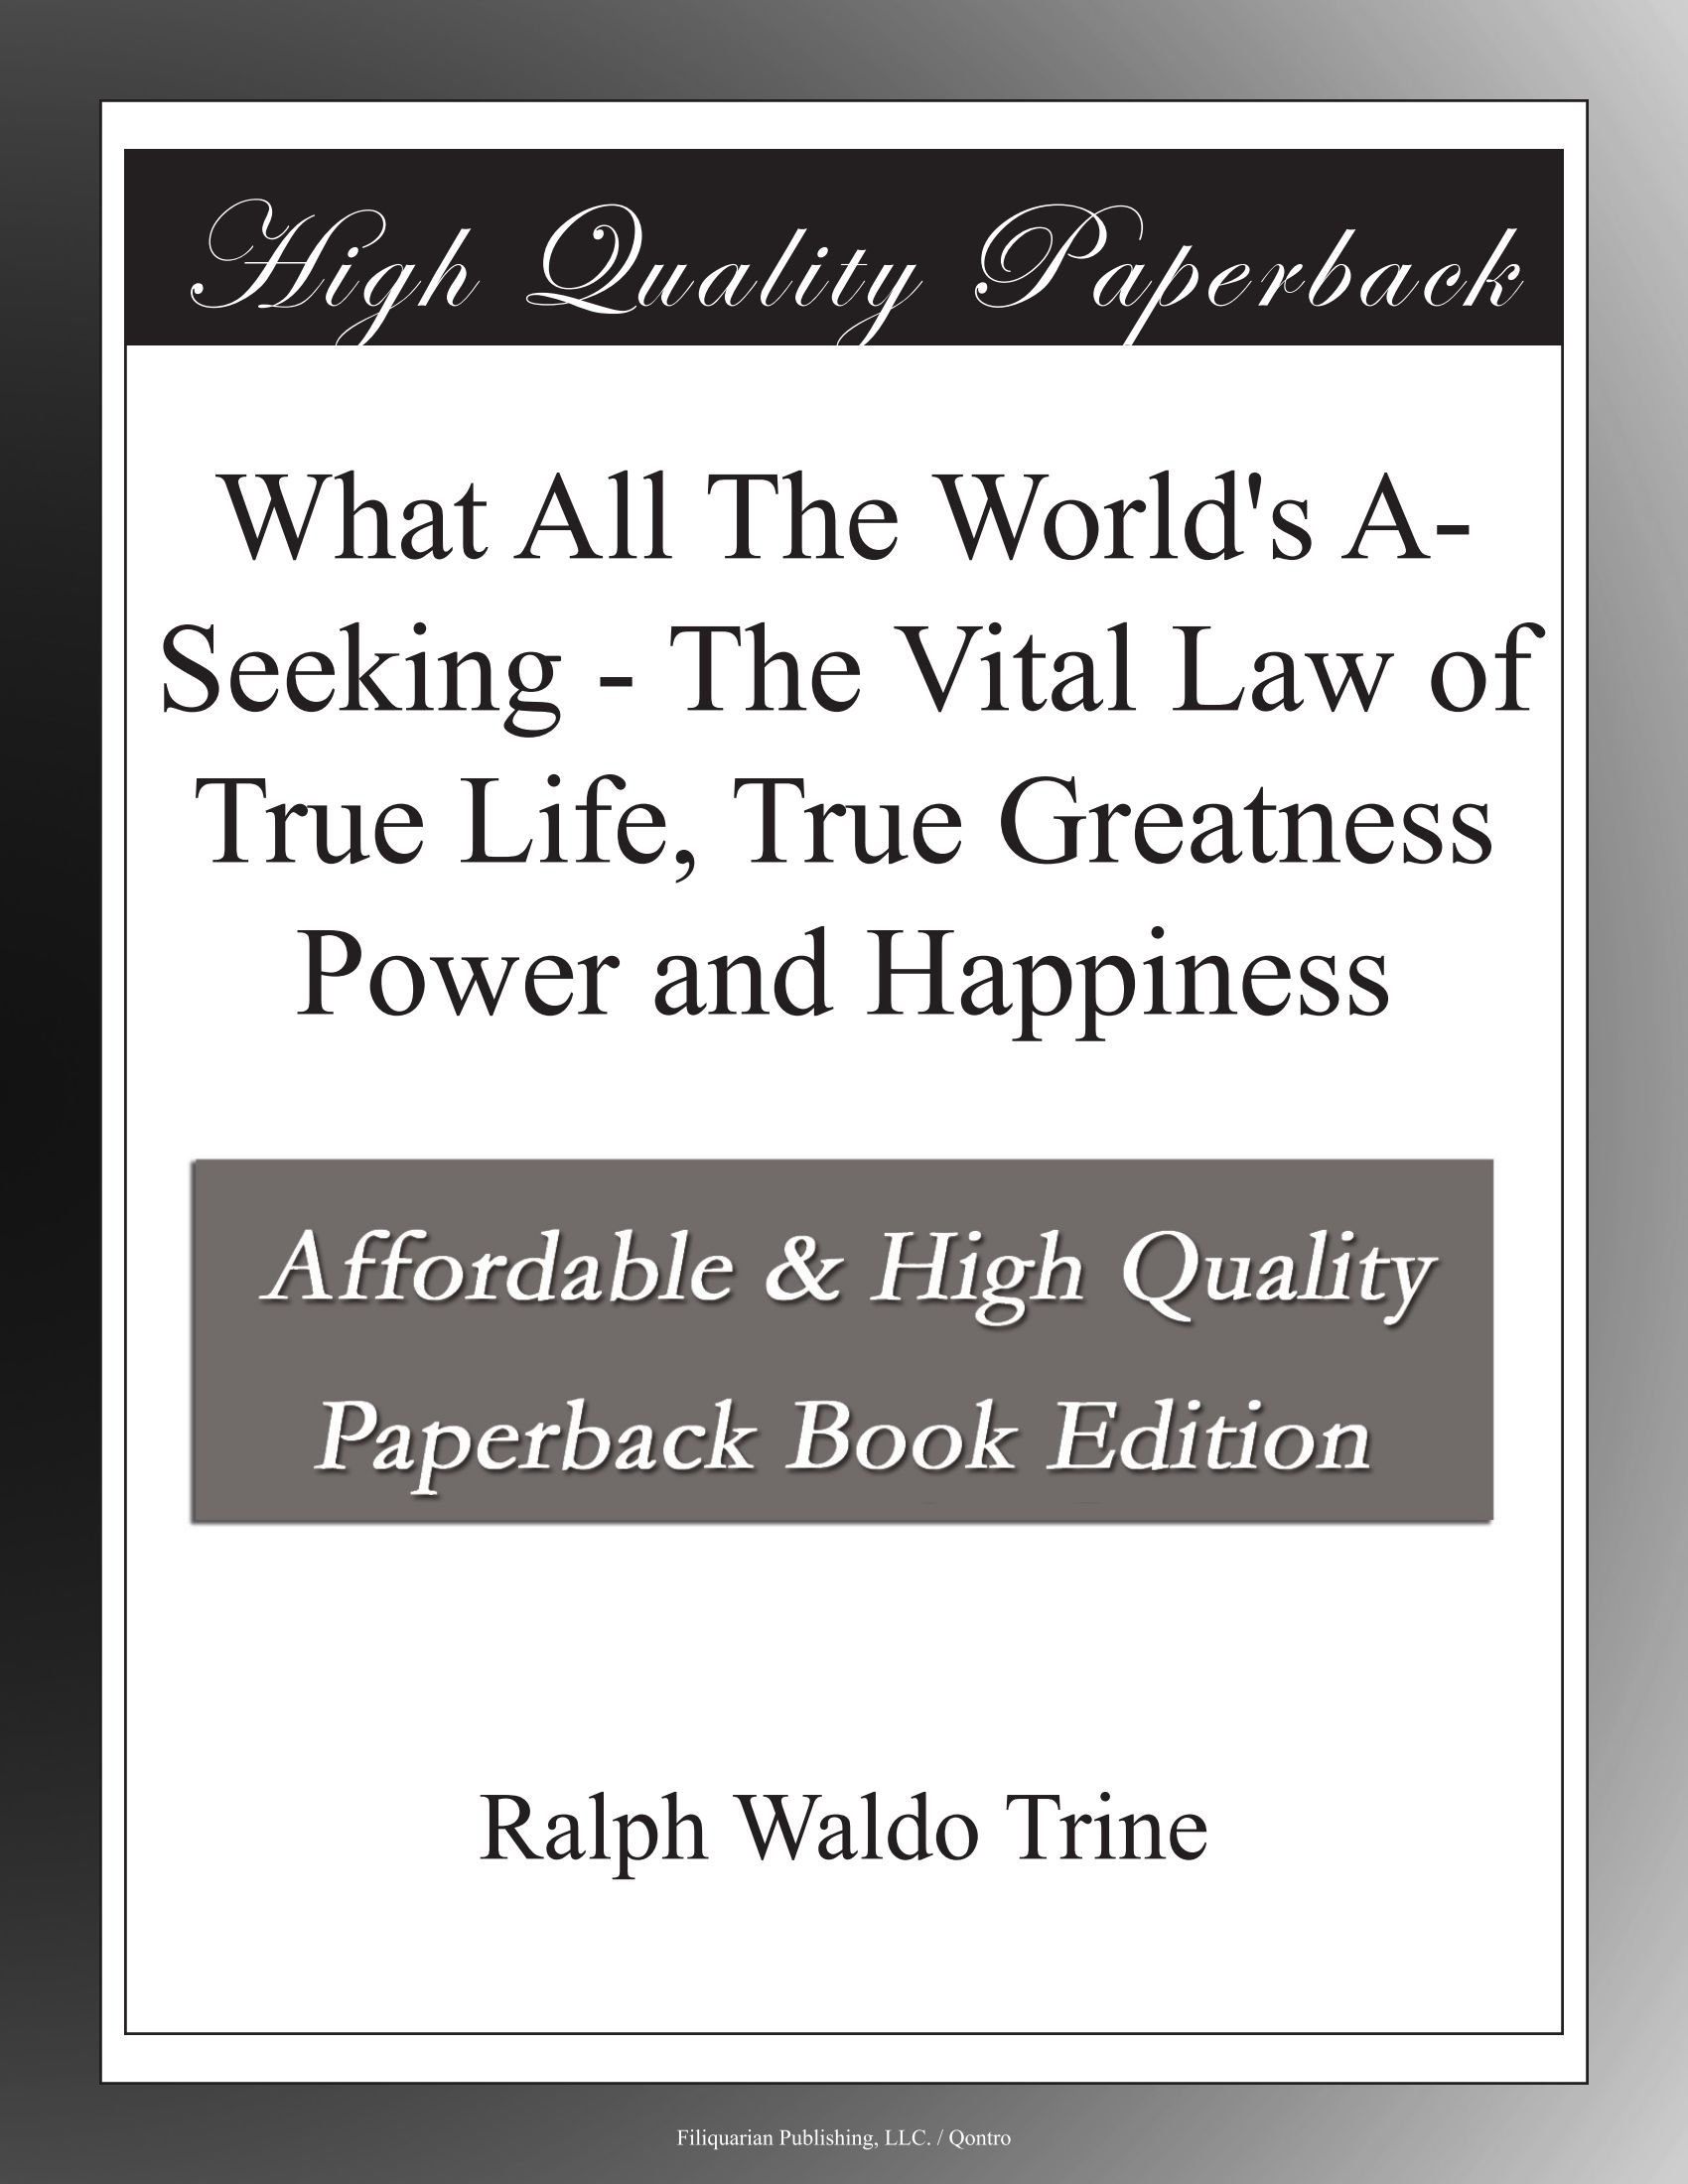 Download What All The World's A-Seeking - The Vital Law of True Life, True Greatness Power and Happiness ebook